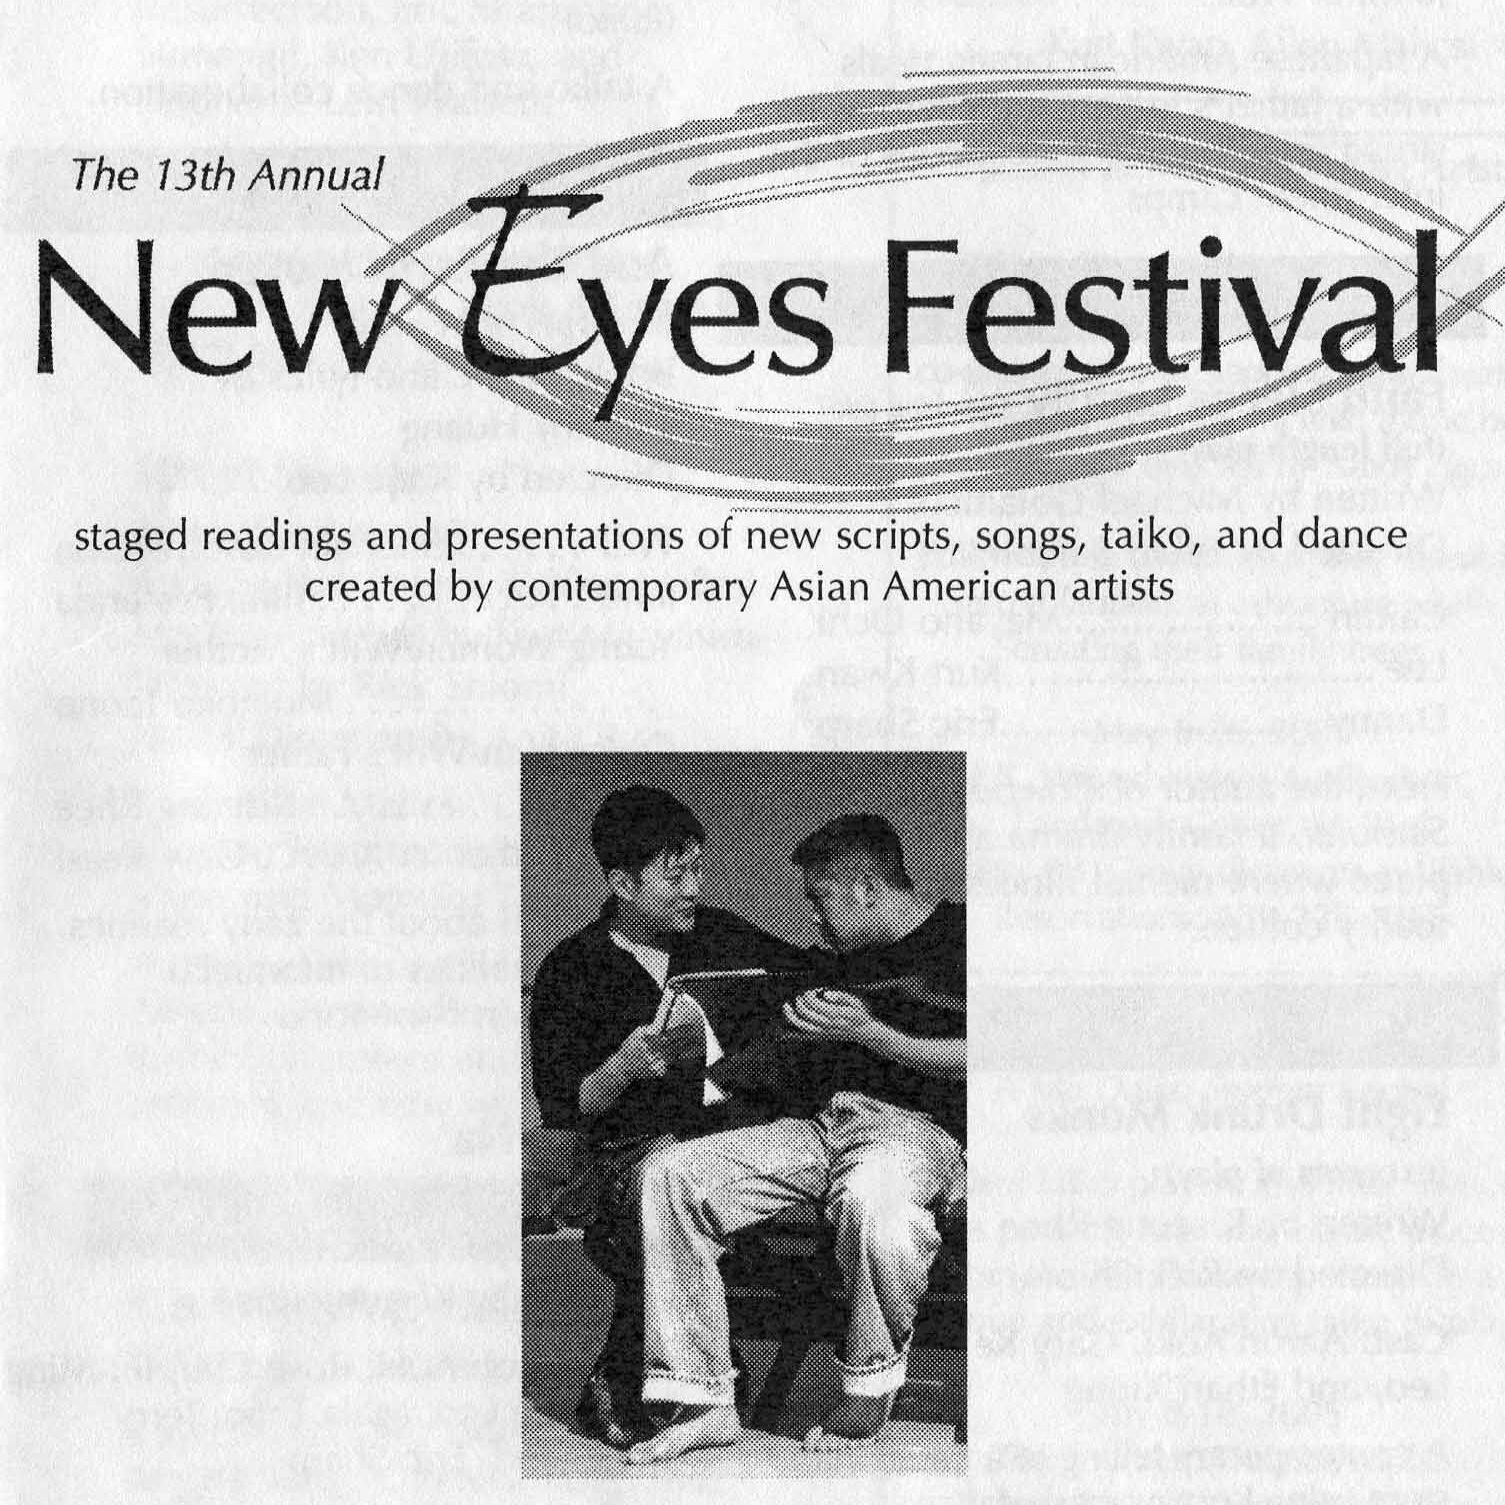 THE NEW EYES FESTIVAL 2004 - June 25th-27th, 2004